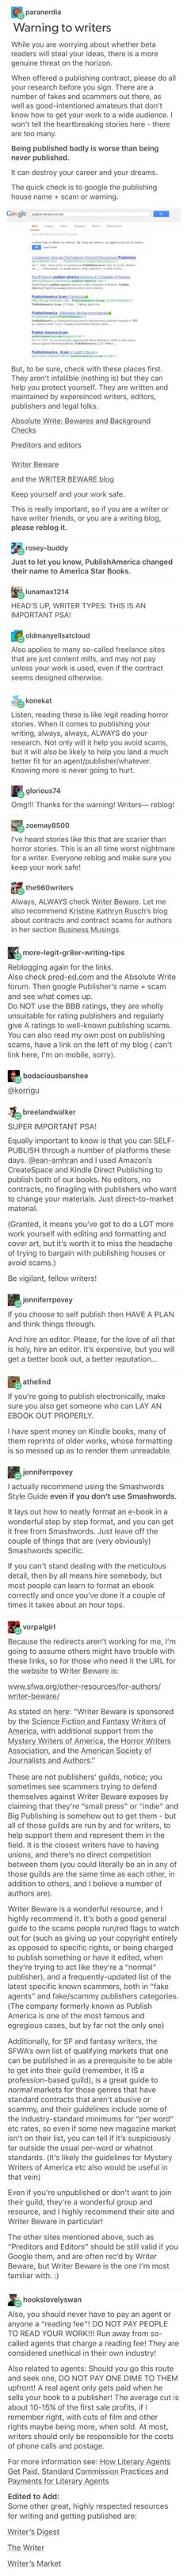 Warnings and advice for writers << this can save careers guys! Please repin!